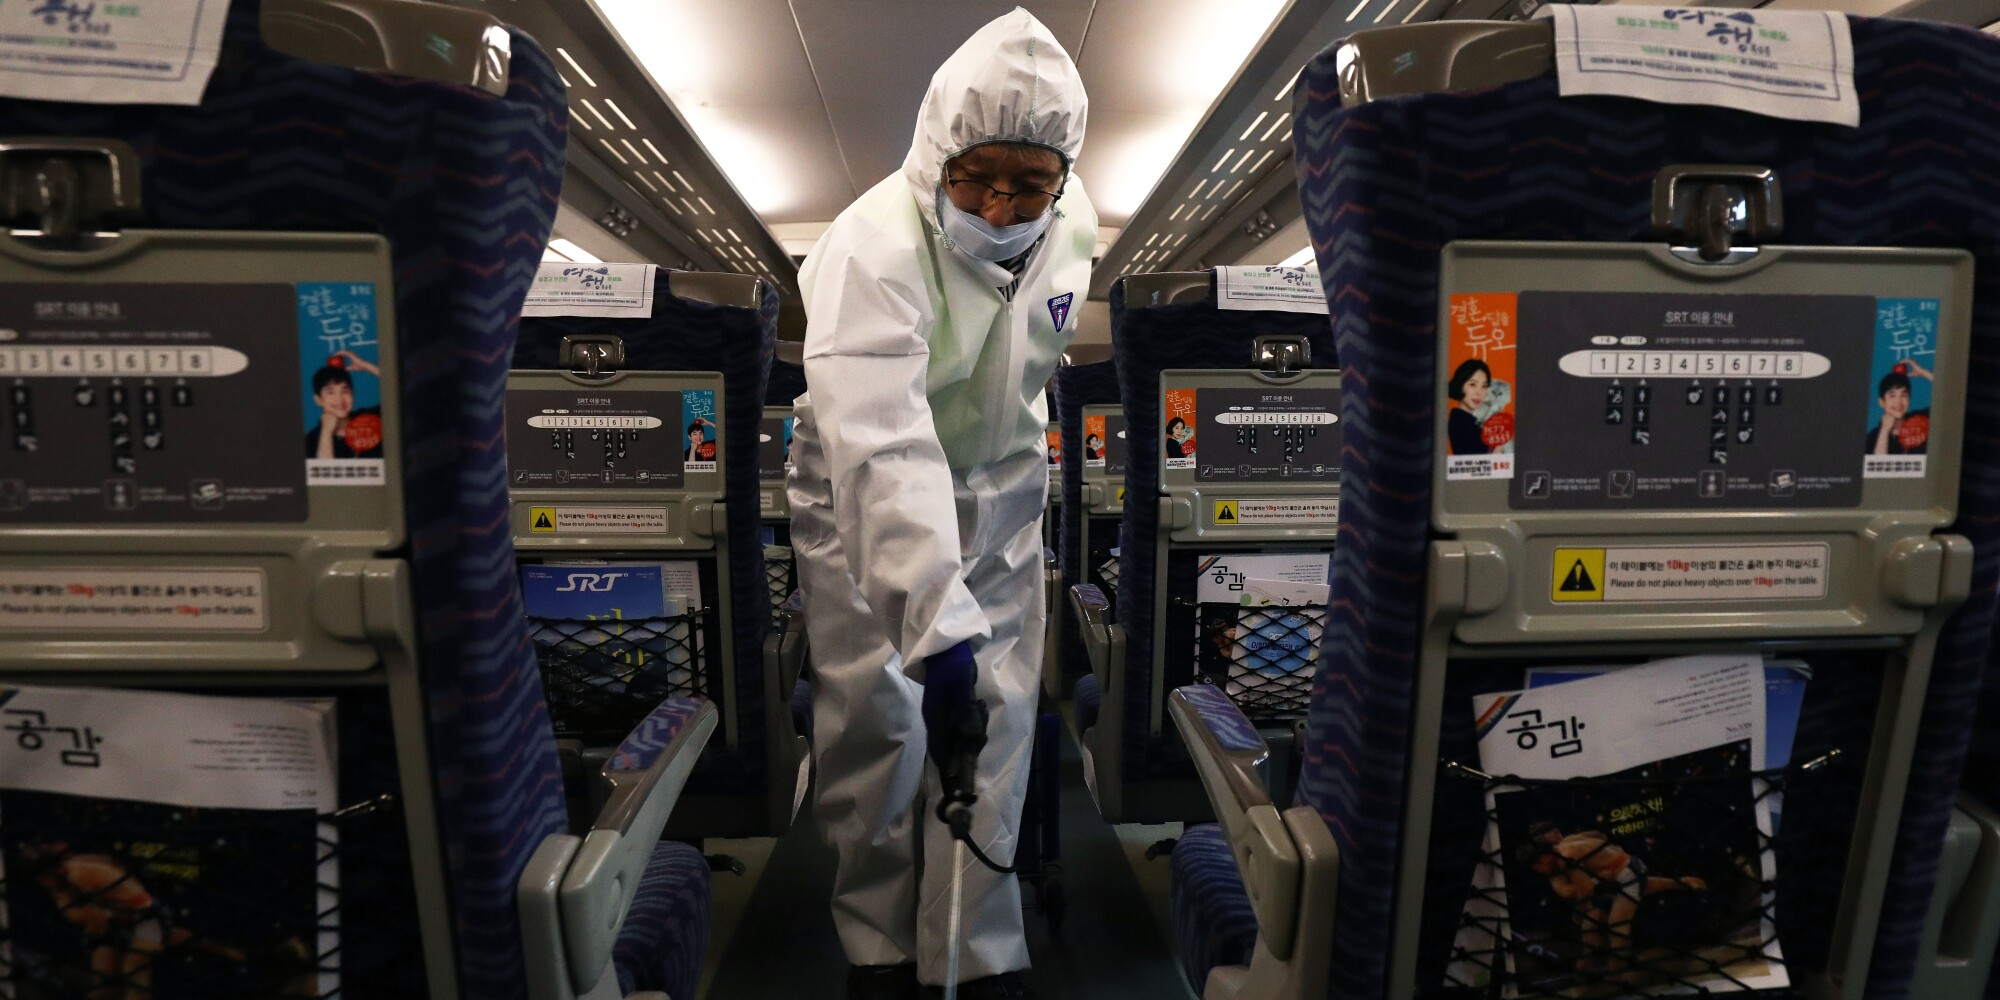 A disinfection worker wearing protective gear sprays antiseptic solution in a train at an SRT train station on Friday in Seoul amid rising public concerns over the spread of China's coronavirus.